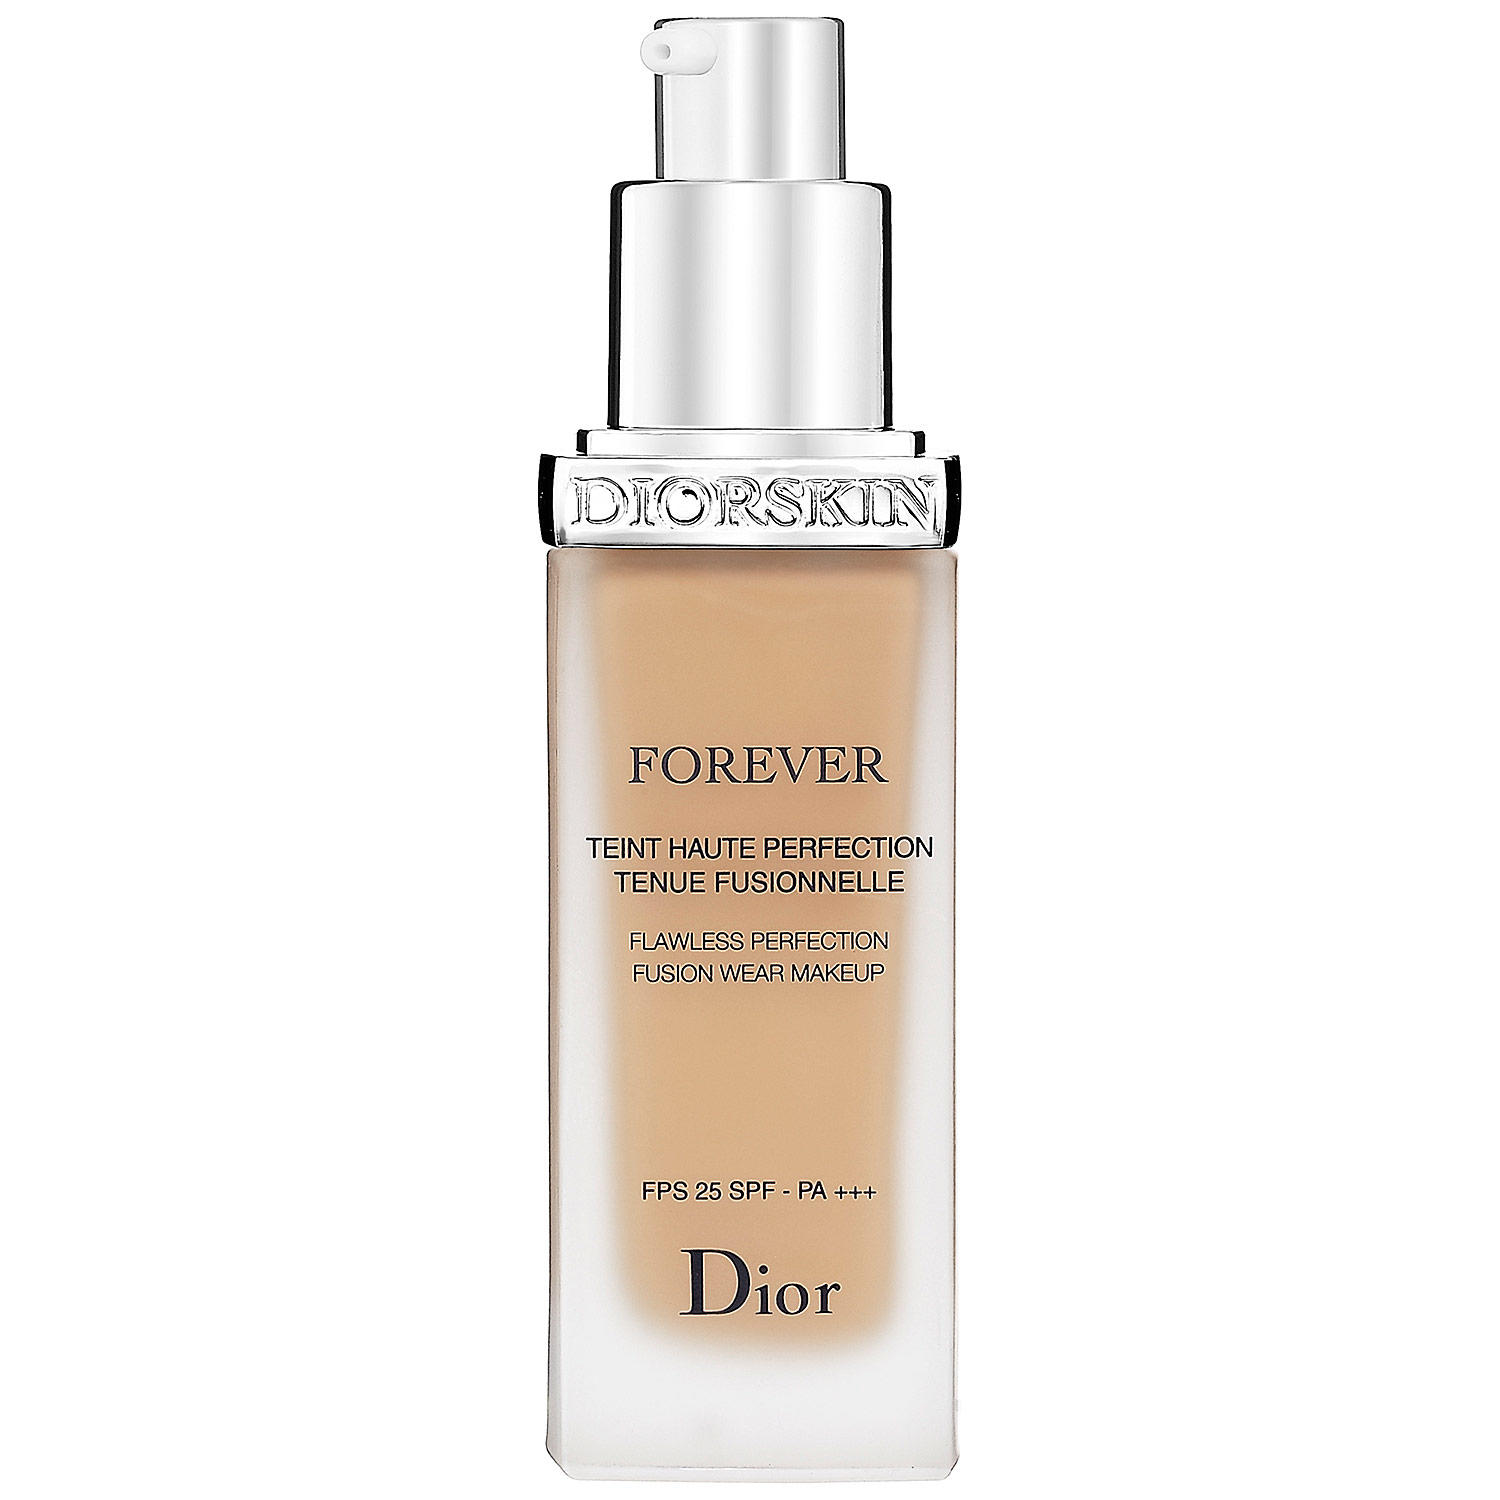 dior diorskin forever foundation medium beige 030 best deals on dior cosmetics. Black Bedroom Furniture Sets. Home Design Ideas